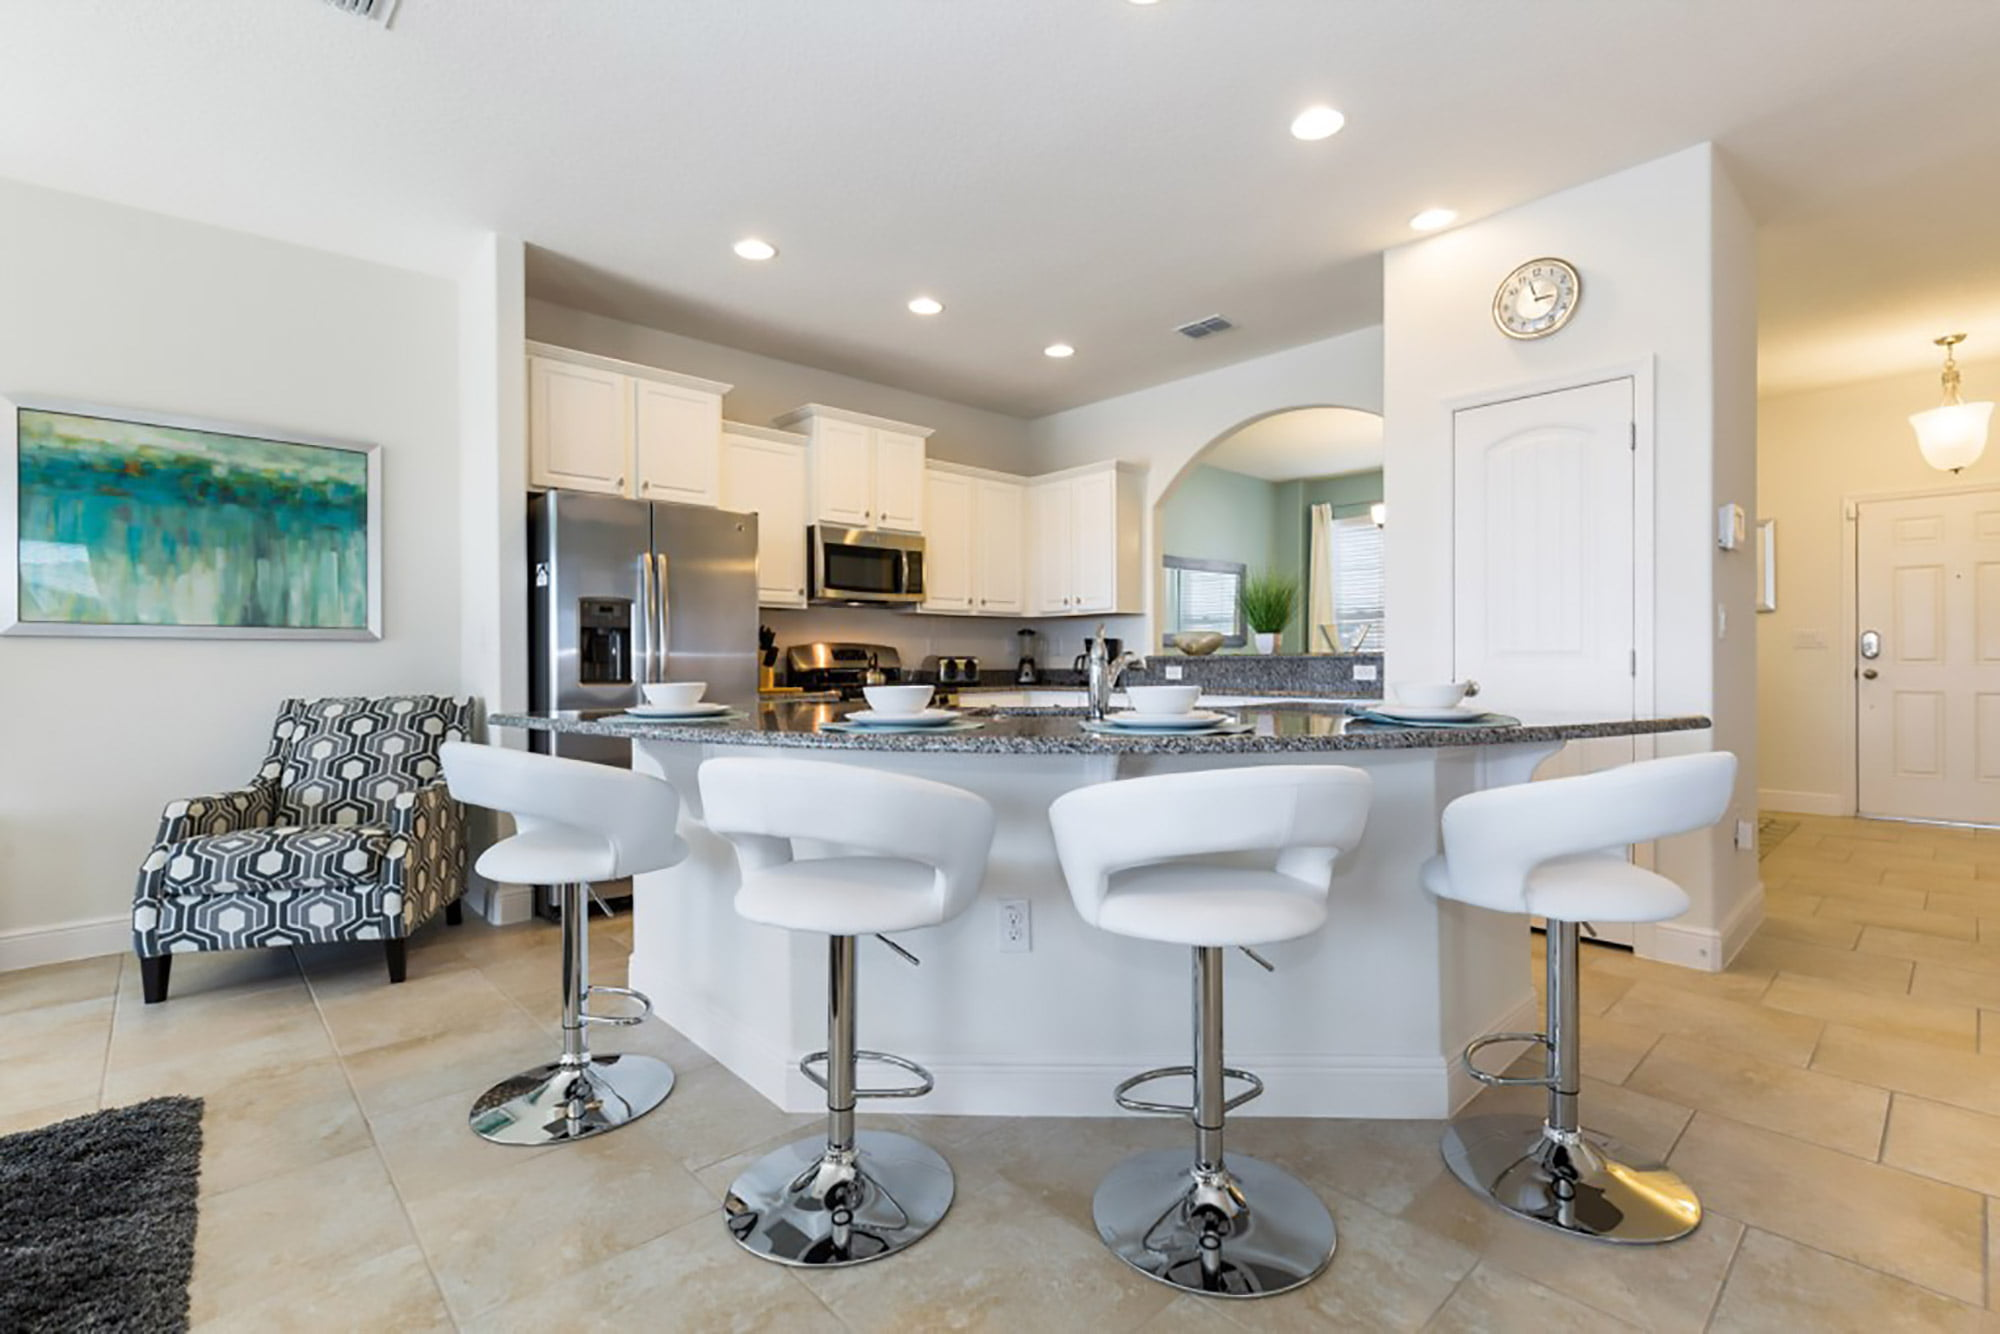 kitchen and breakfast bar area of Orlando Holiday Management home in Davenport